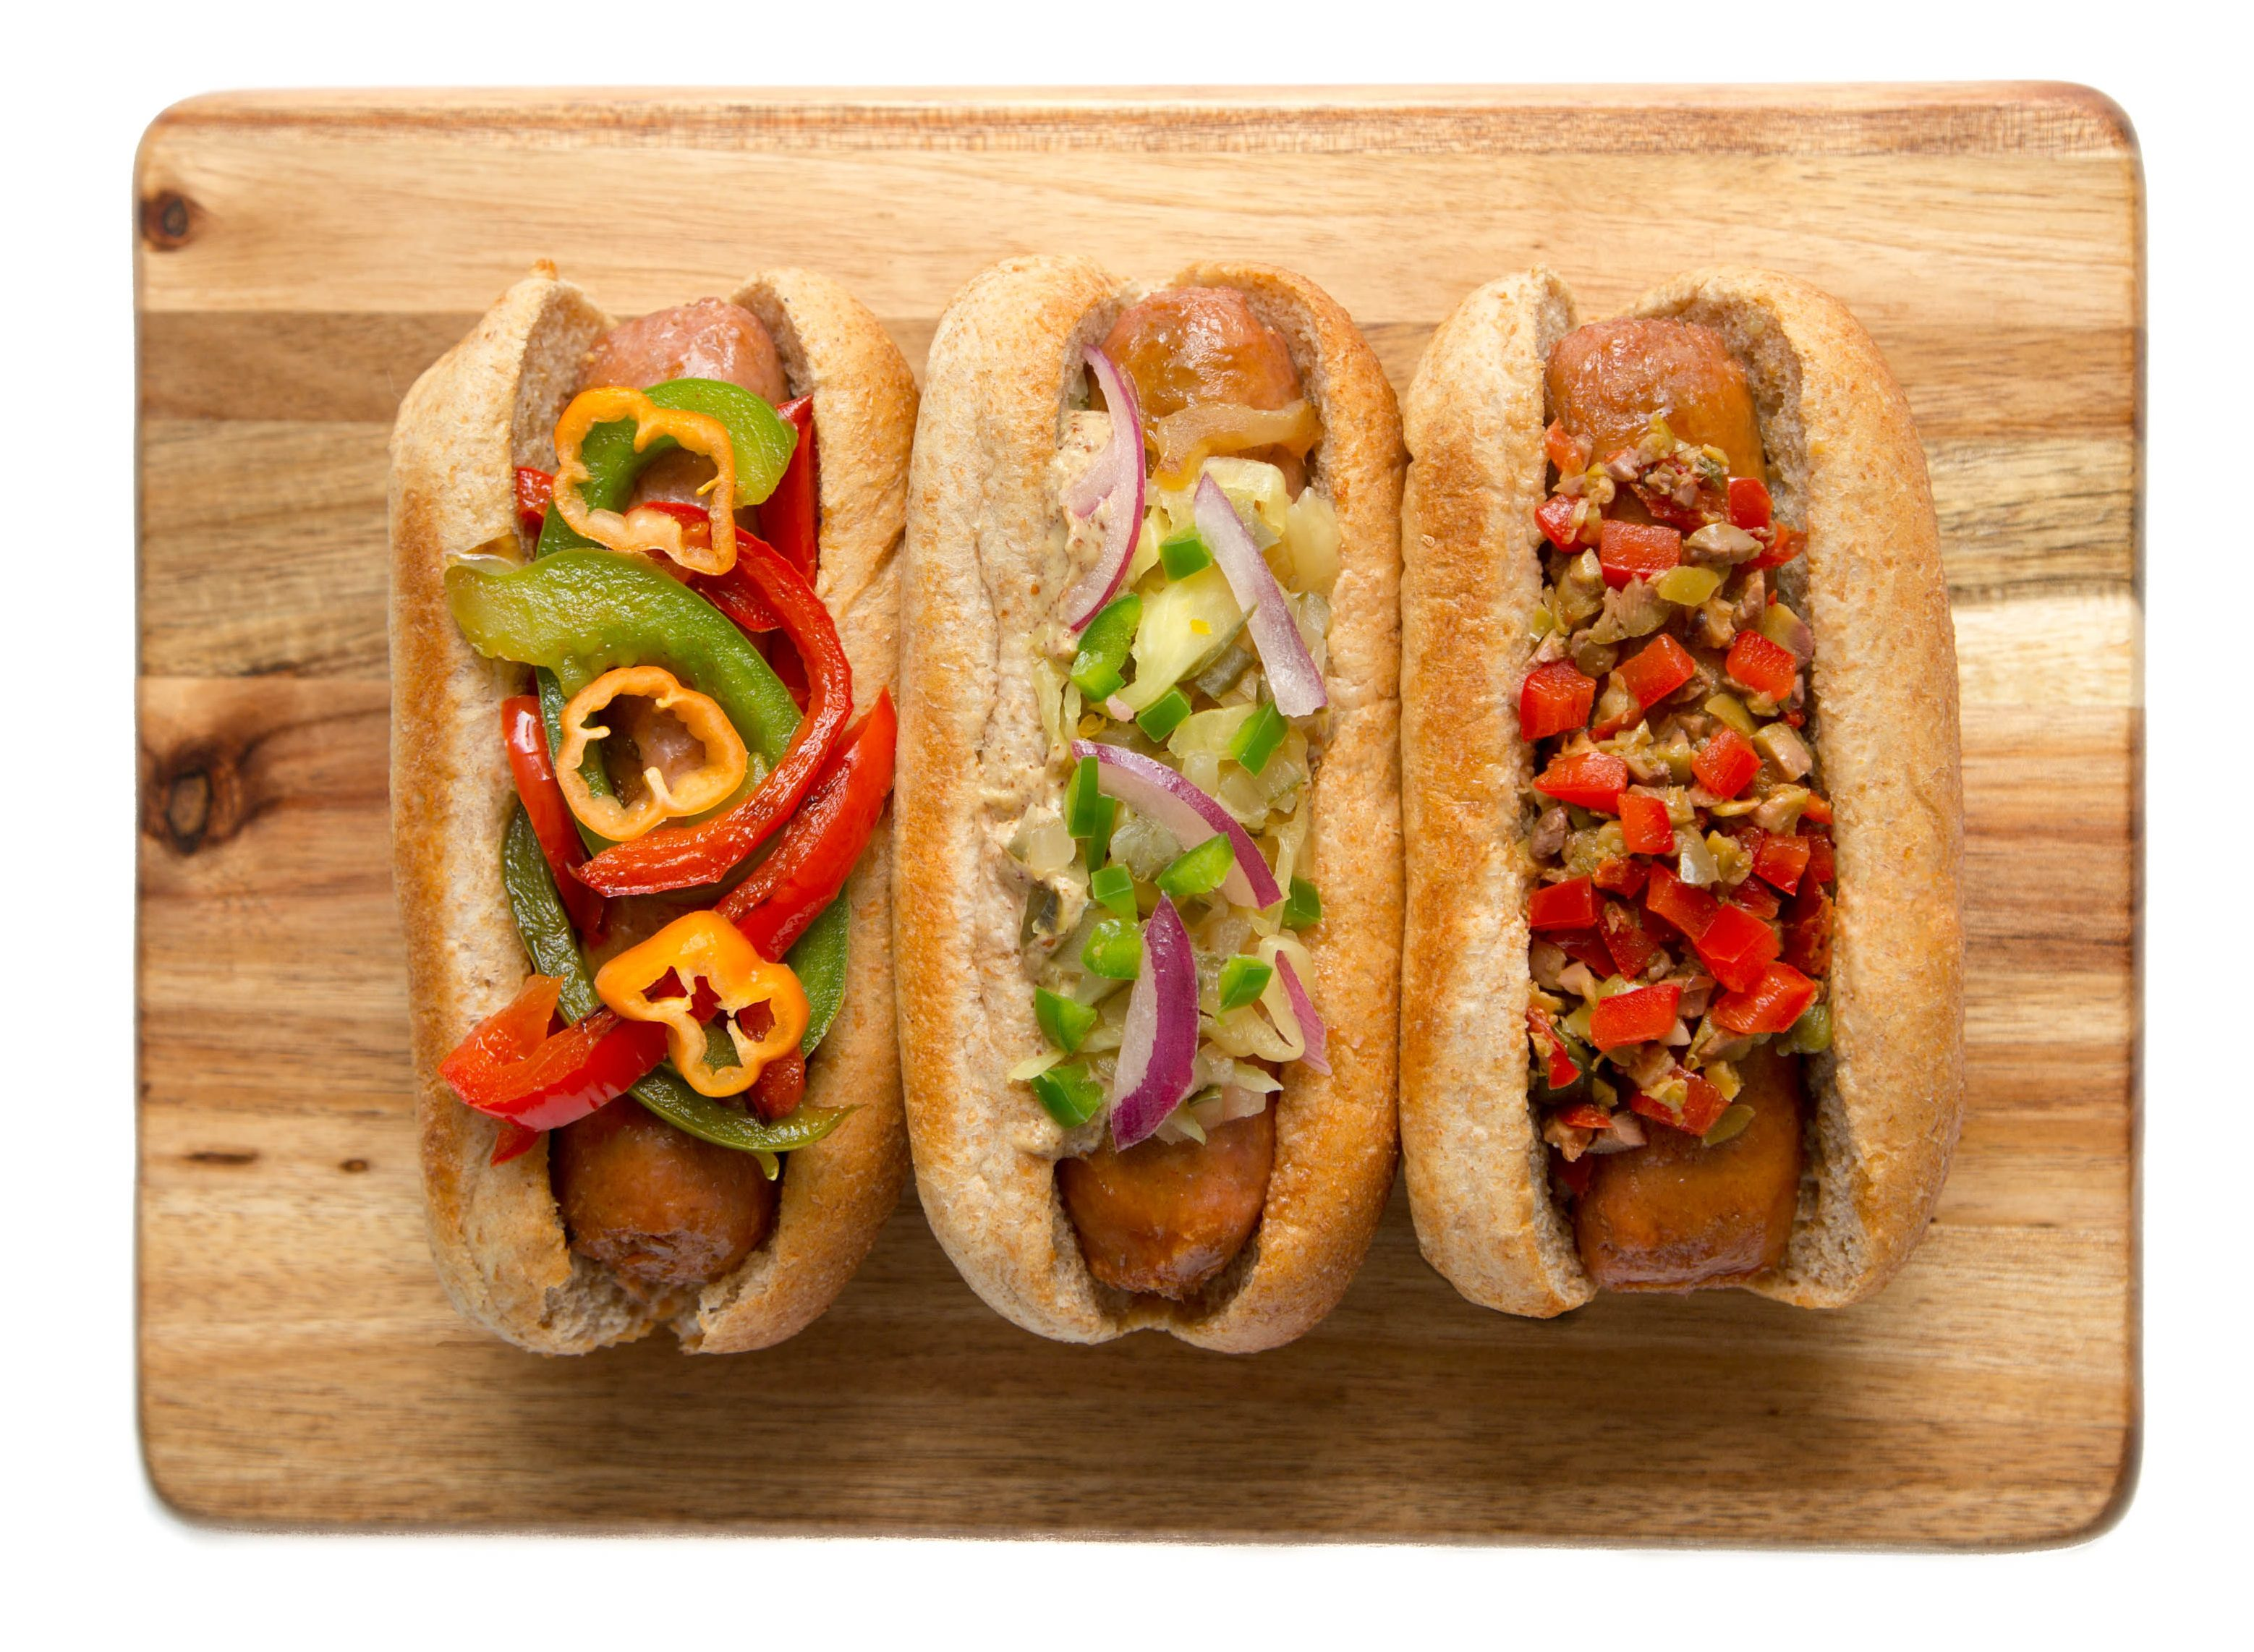 A new sausage product, a plant-based creation from Beyond Meat, is flying out of area Whole Foods as soon as it hits the shelves.